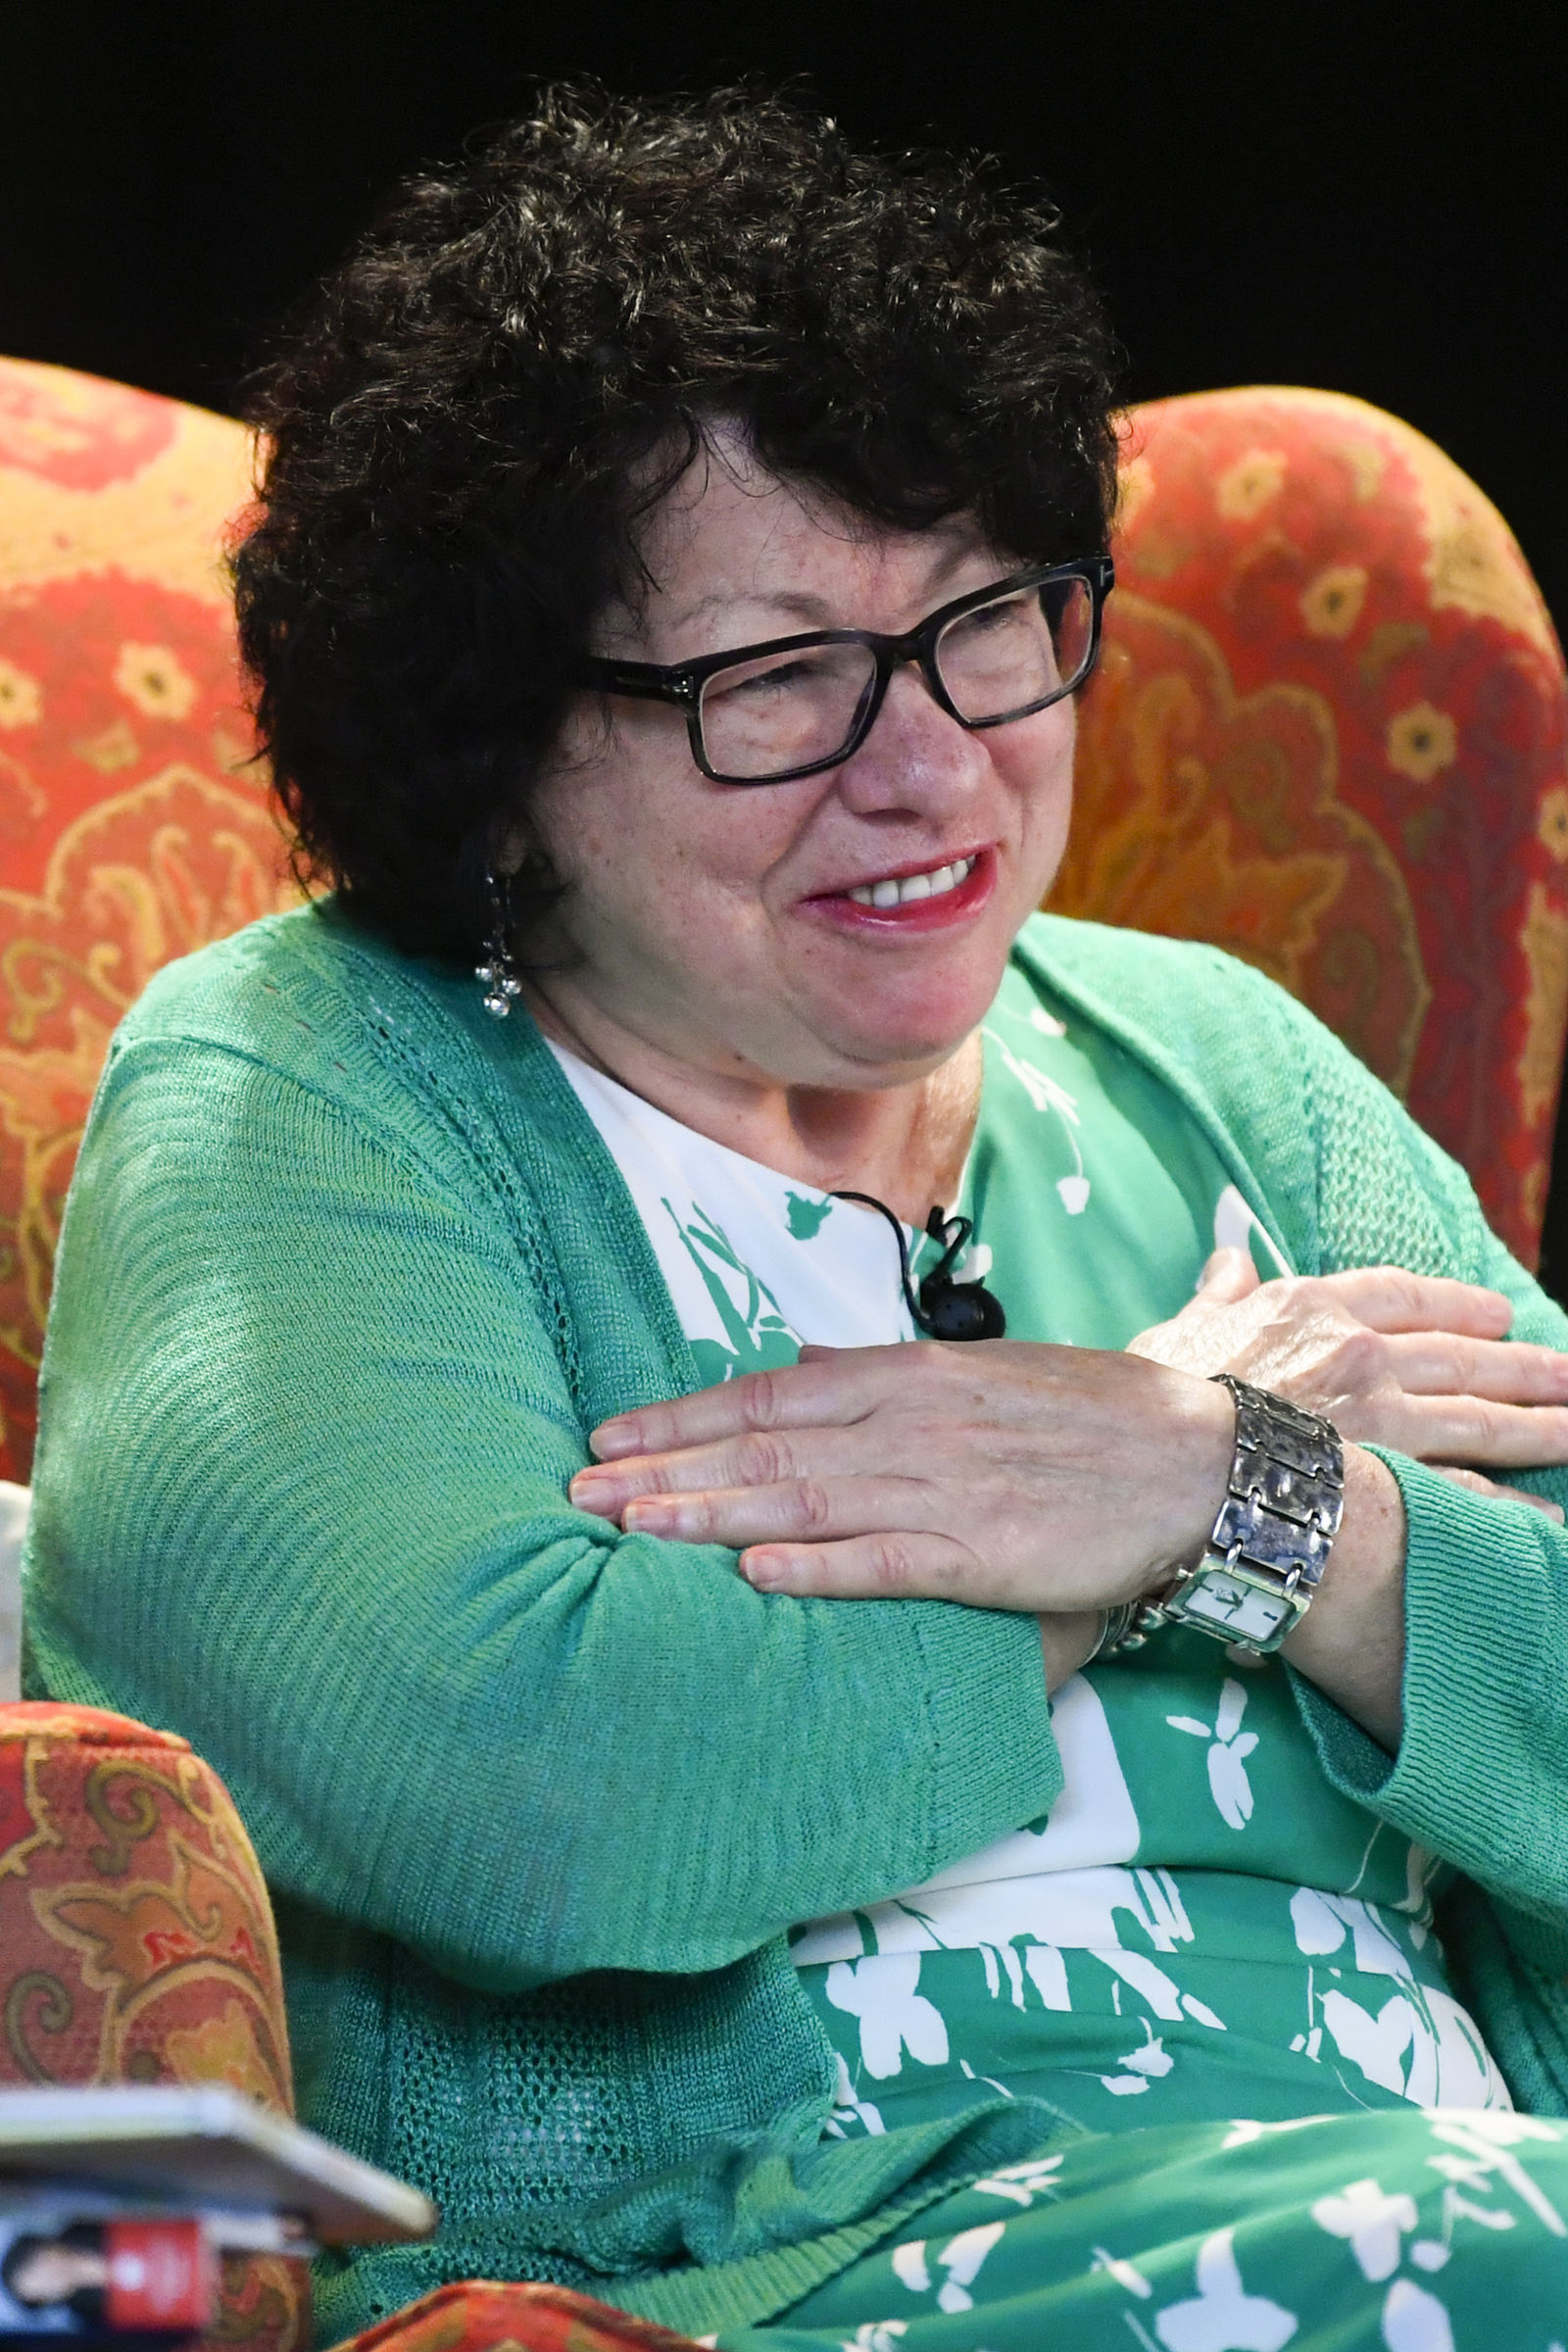 "U.S. Supreme Court Justice Sonia Sotomayor reacts after being introduced during an event promoting her new children's book ""Just Ask!"" in Decatur, Ga., Sunday, Sept. 1, 2019. (AP Photo/John Amis)"